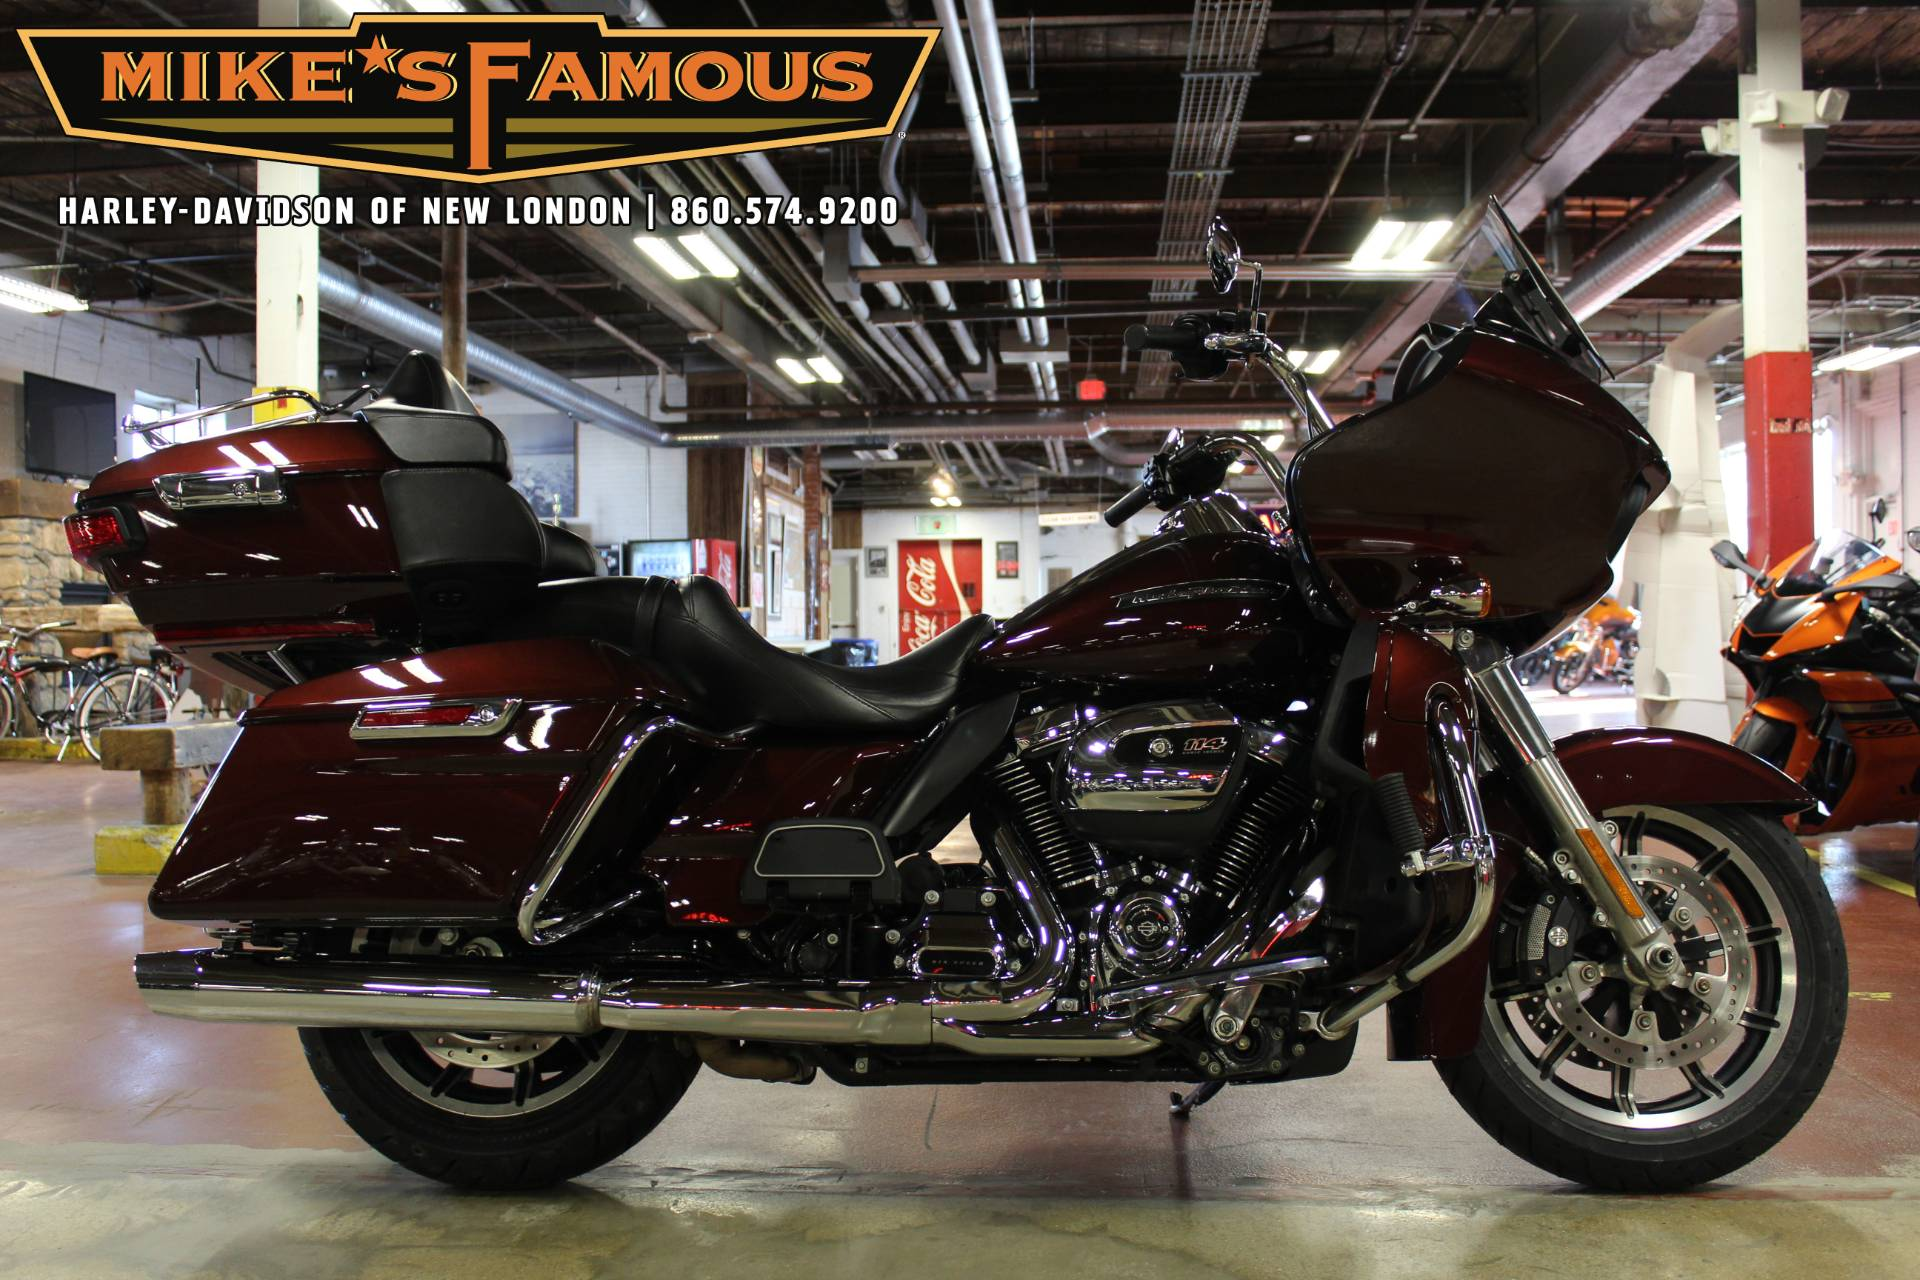 Used 2019 Harley Davidson Road Glide Ultra Twisted Cherry Motorcycles In New London Ct T49660